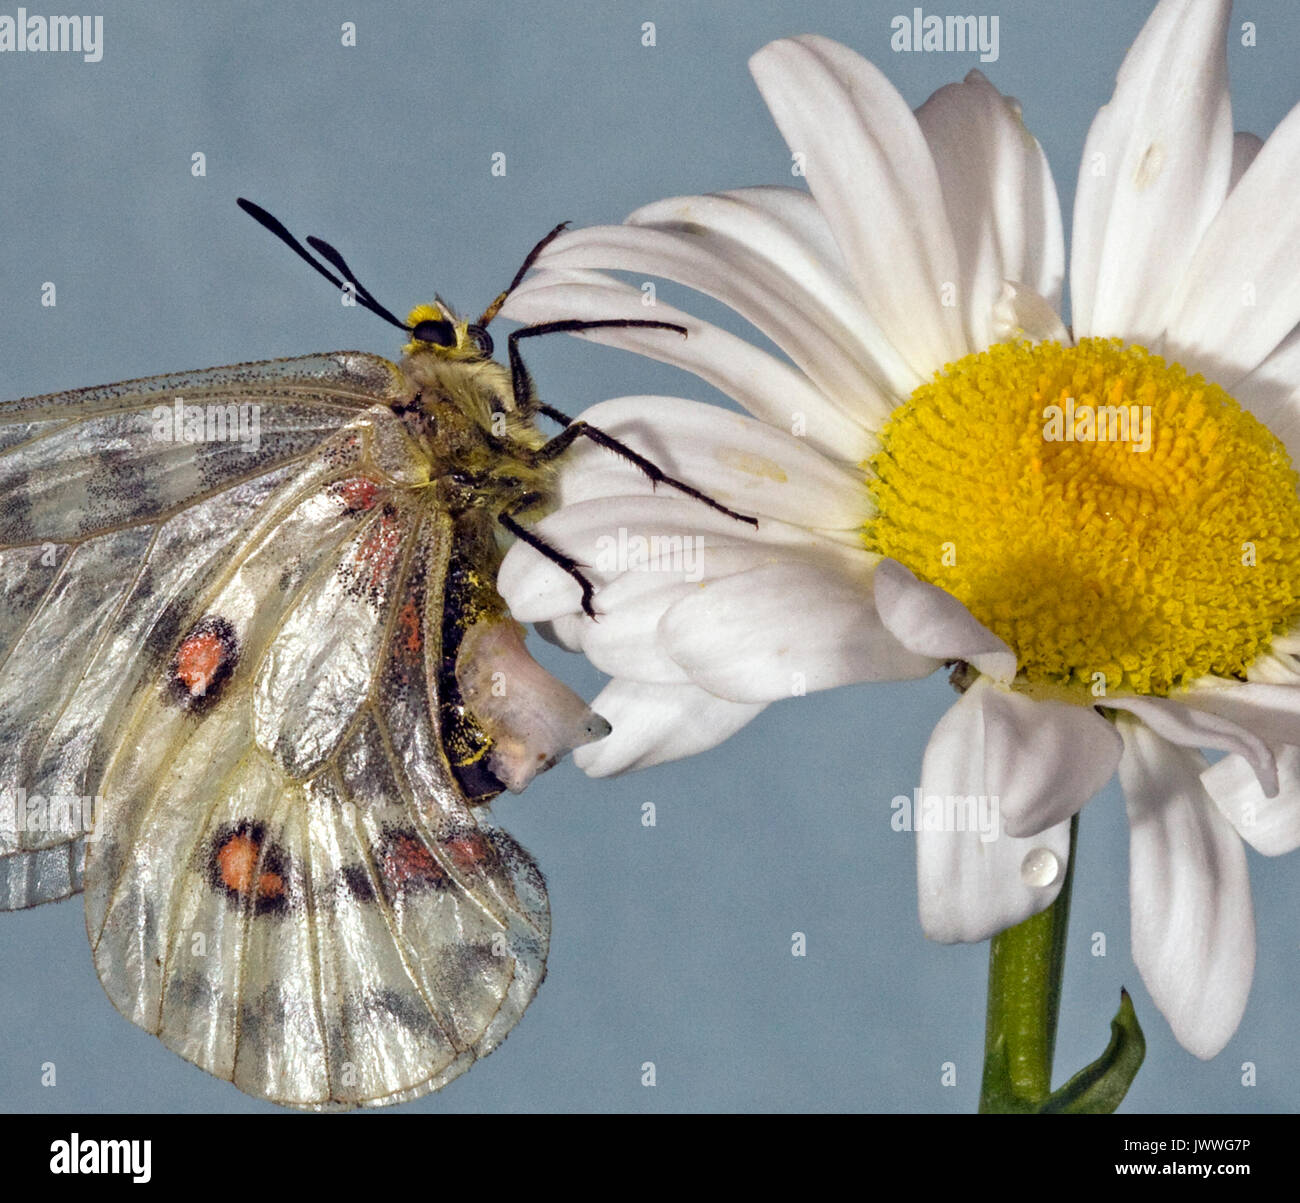 A female Clodius Parnassian butterfly resting on an ox-eye daisy. The whitish structure on her abdomen is a sphragis, a mating plug. - Stock Image